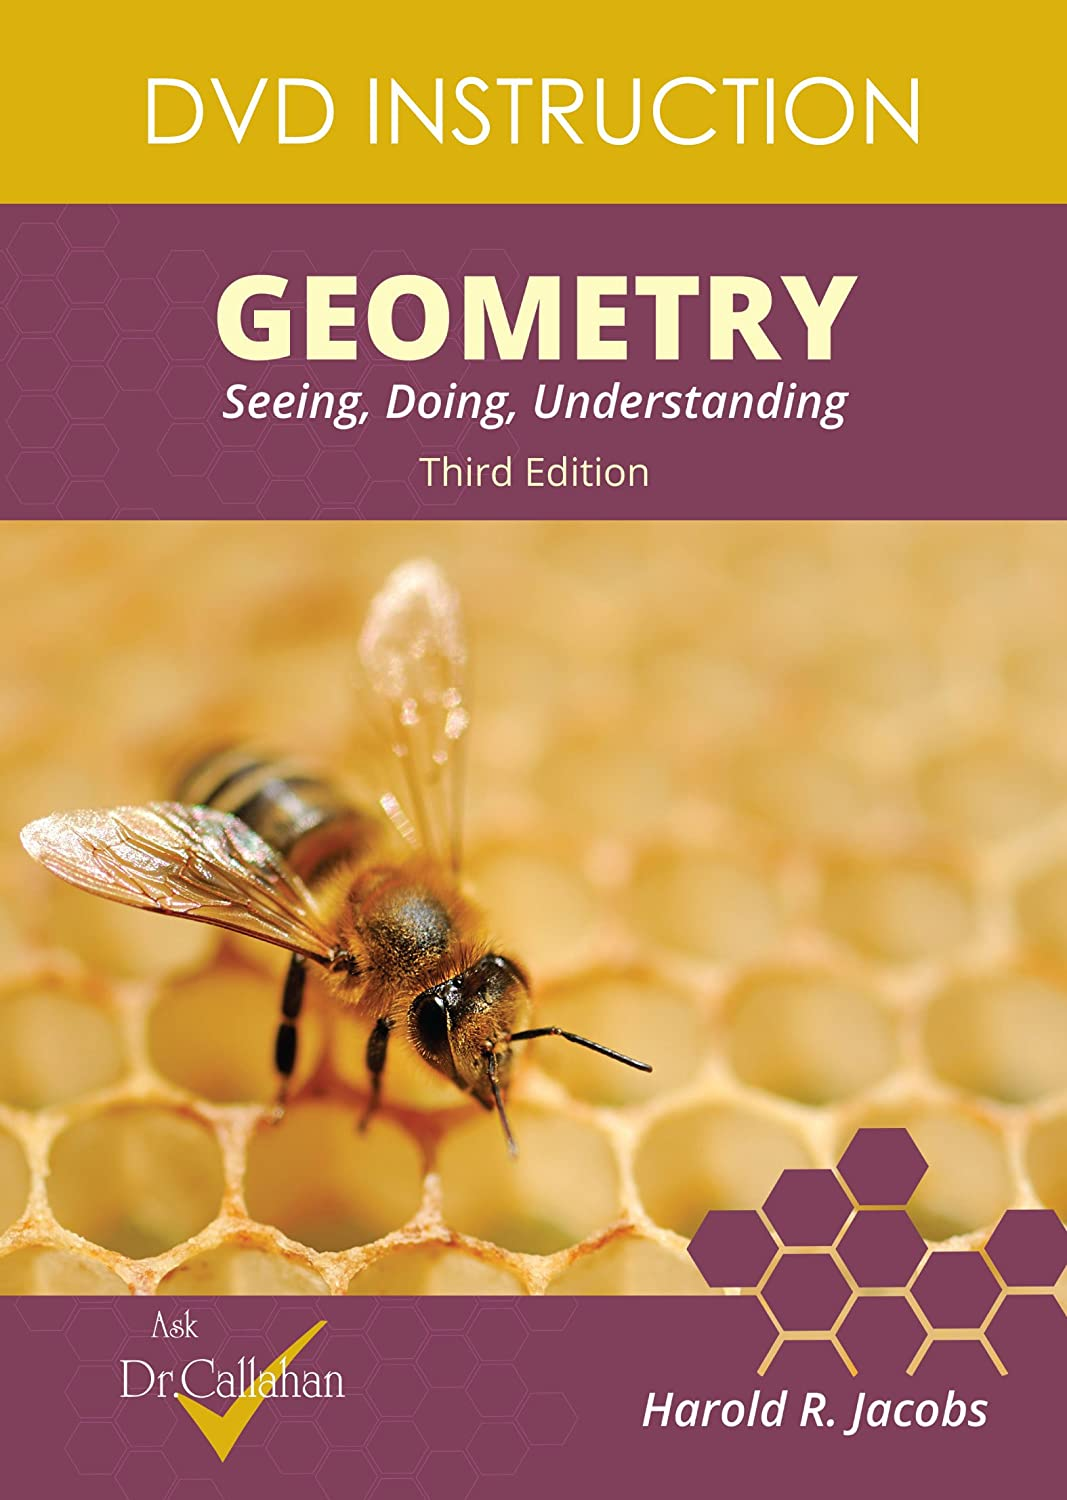 Amazon.com: Geometry: Seeing, Doing, Understanding DVD Instruction: Dr Dale  Callahan: Movies & TV